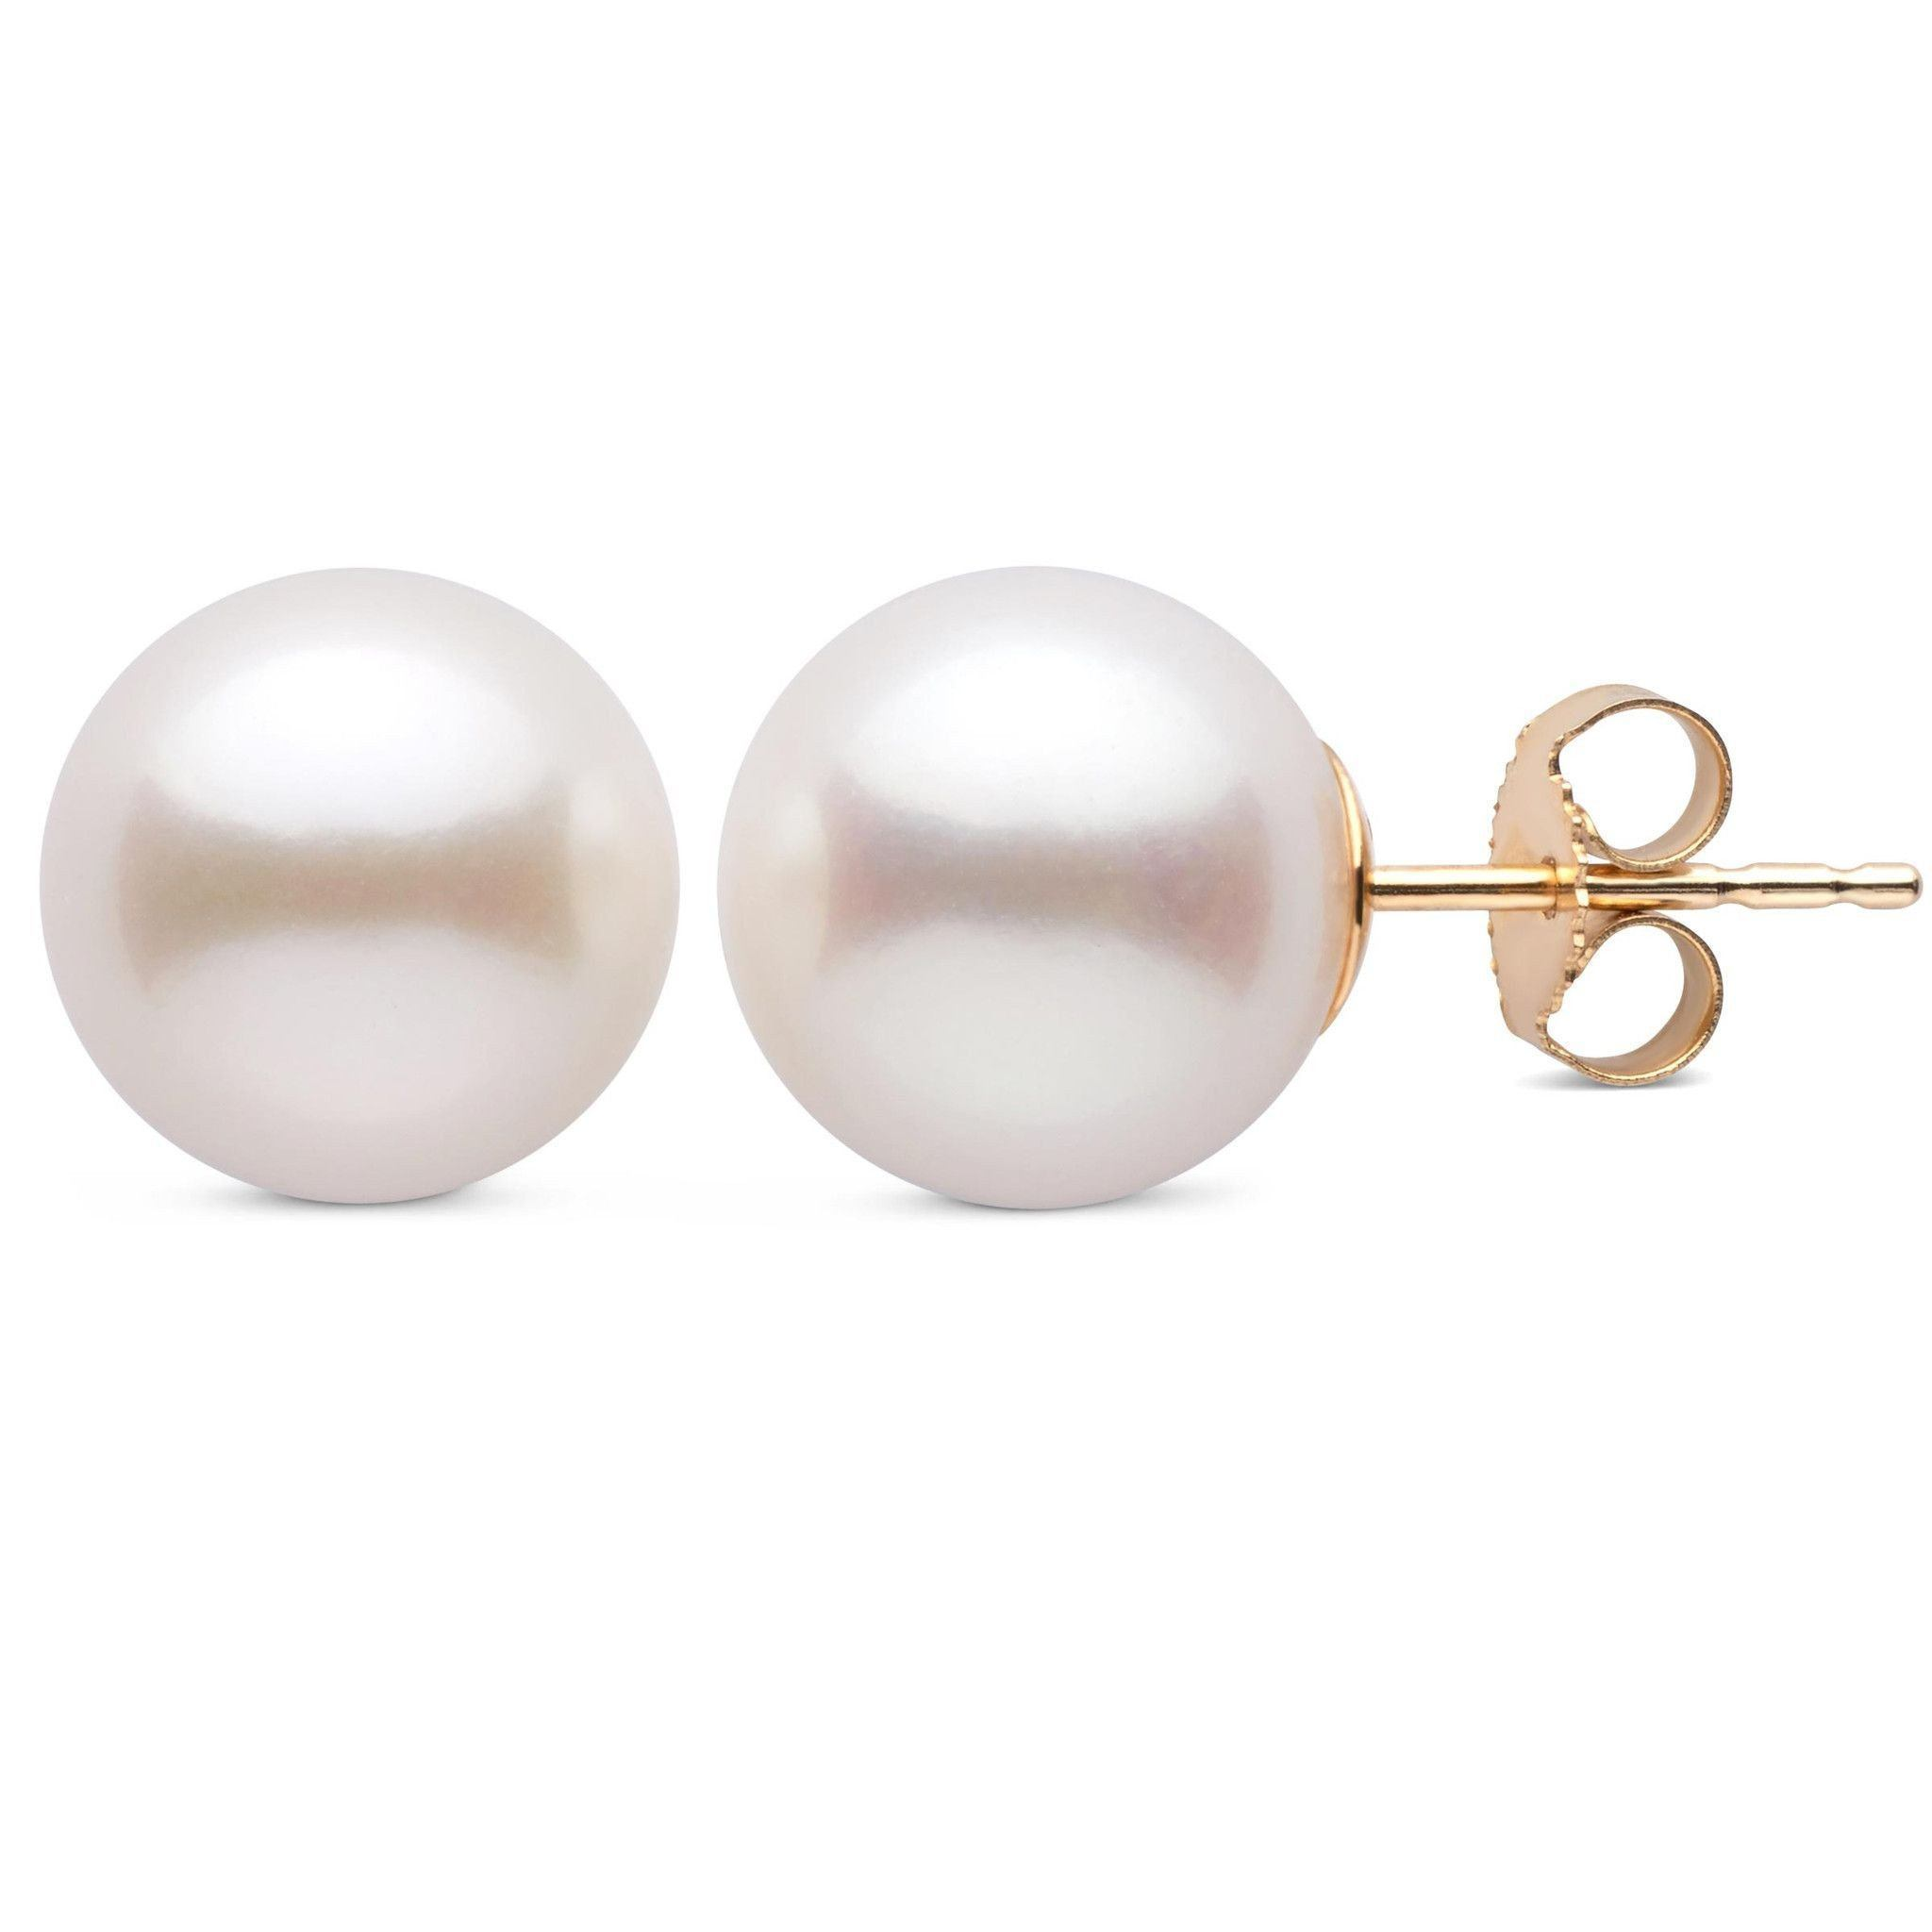 10.0-10.5 mm White Freshadama Freshwater Pearl Stud Earrings